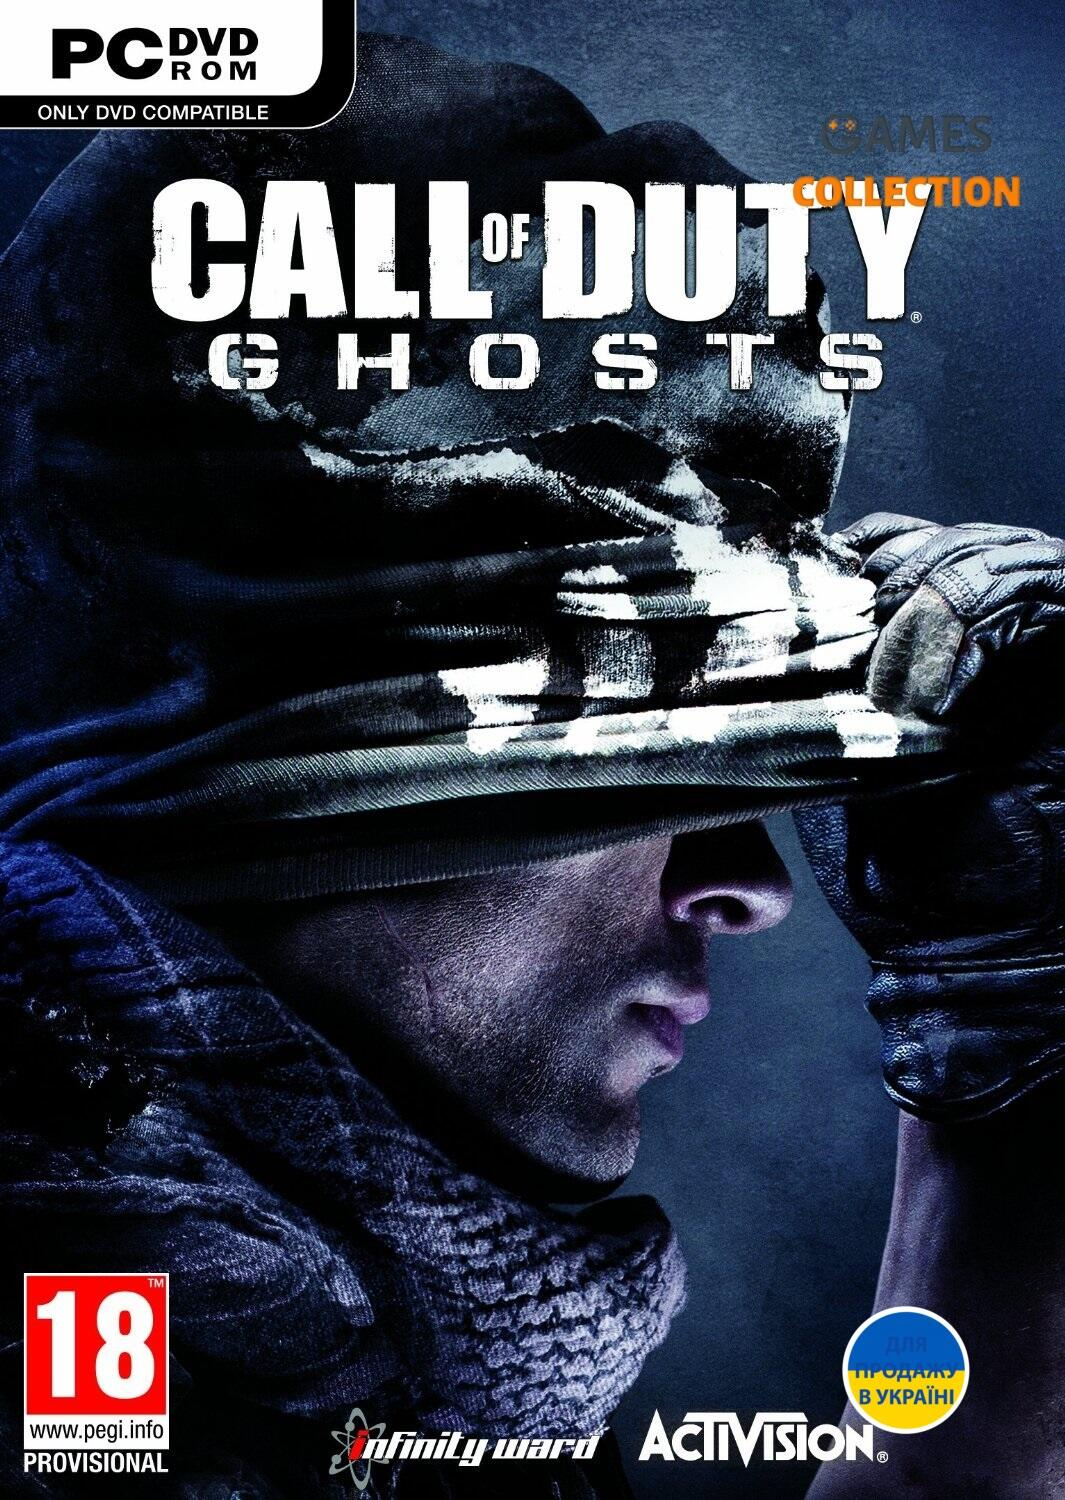 Call of Duty. Ghosts Расширенное издание PC-DVD (DVD-box)-thumb